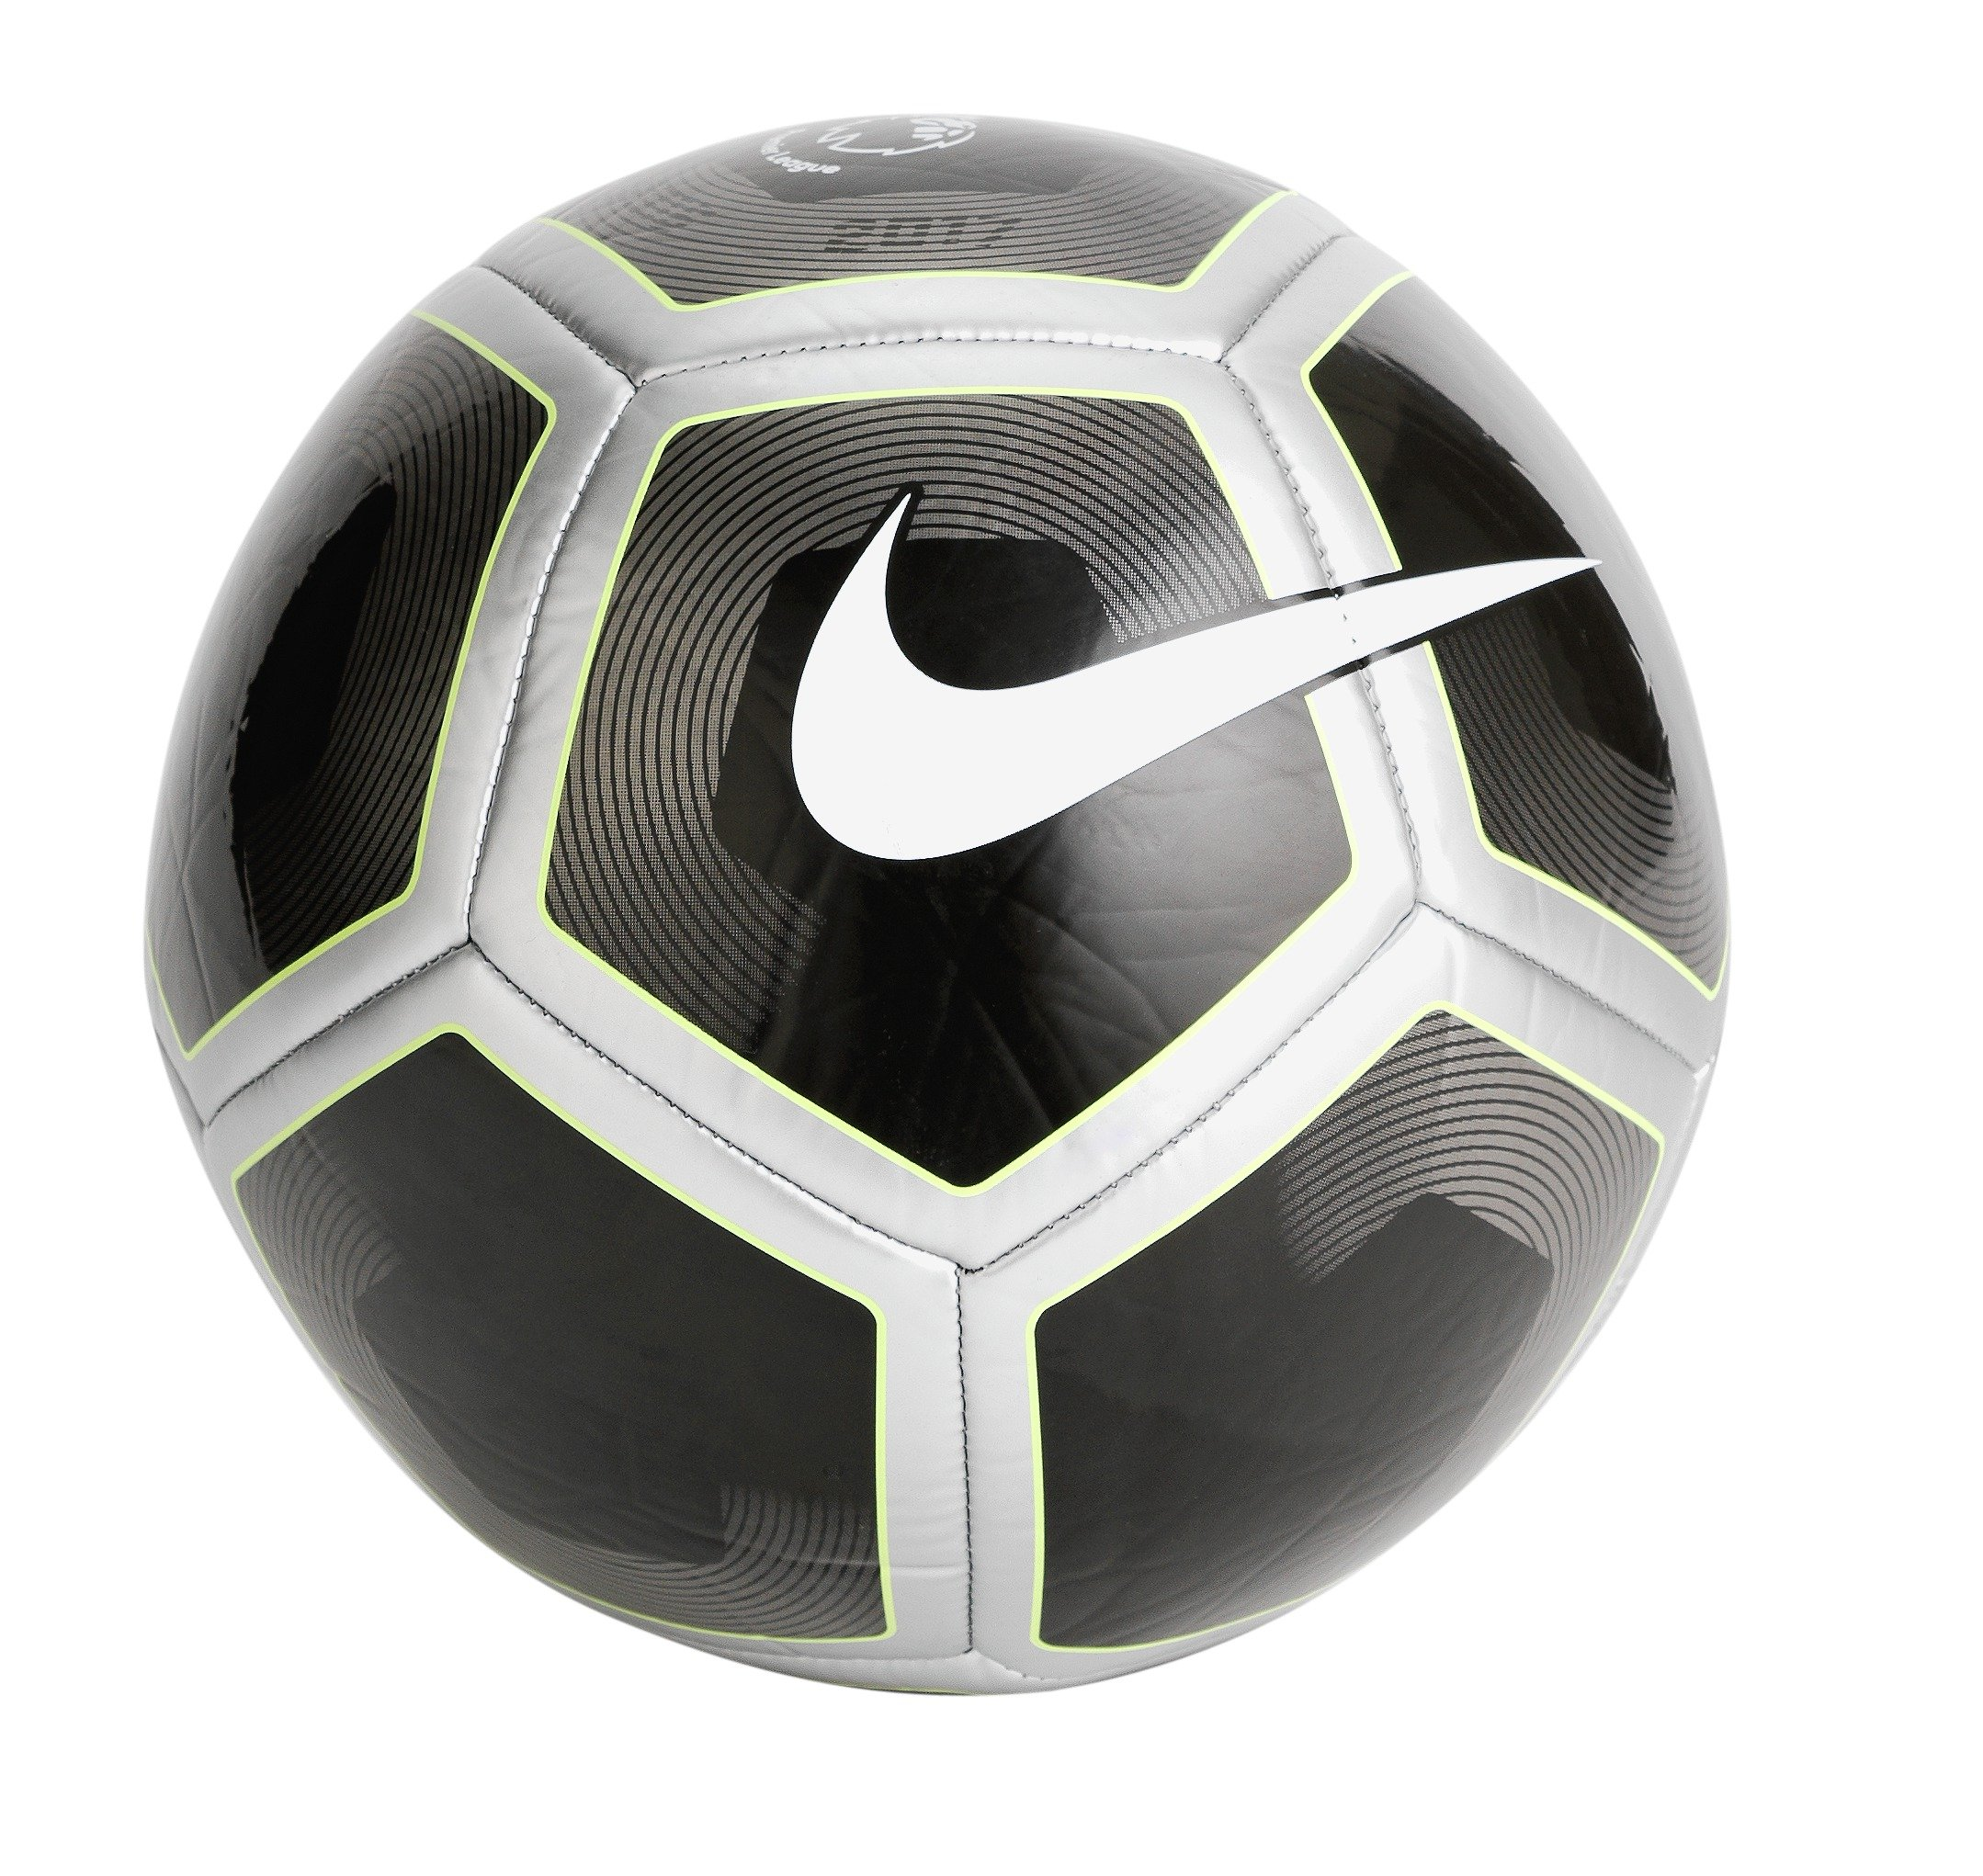 Nike Pitch Football - Black